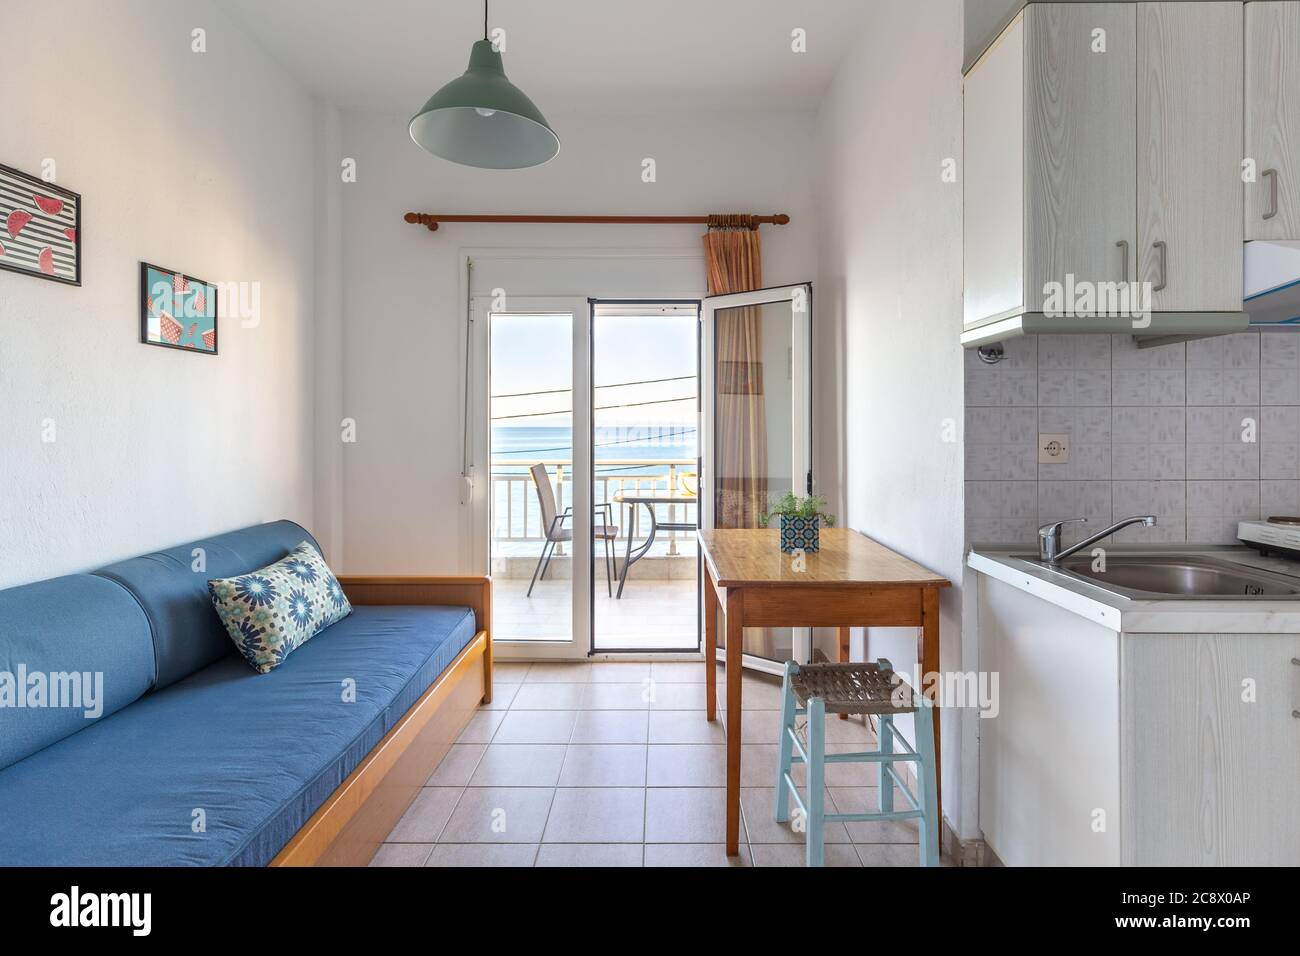 Organization Of A Sleeping Rest And Cooking Space In The Hotel Apartments For Seasonal Rest For Tourists At The Sea In Places Of Relaxation In Sunny Stock Photo Alamy